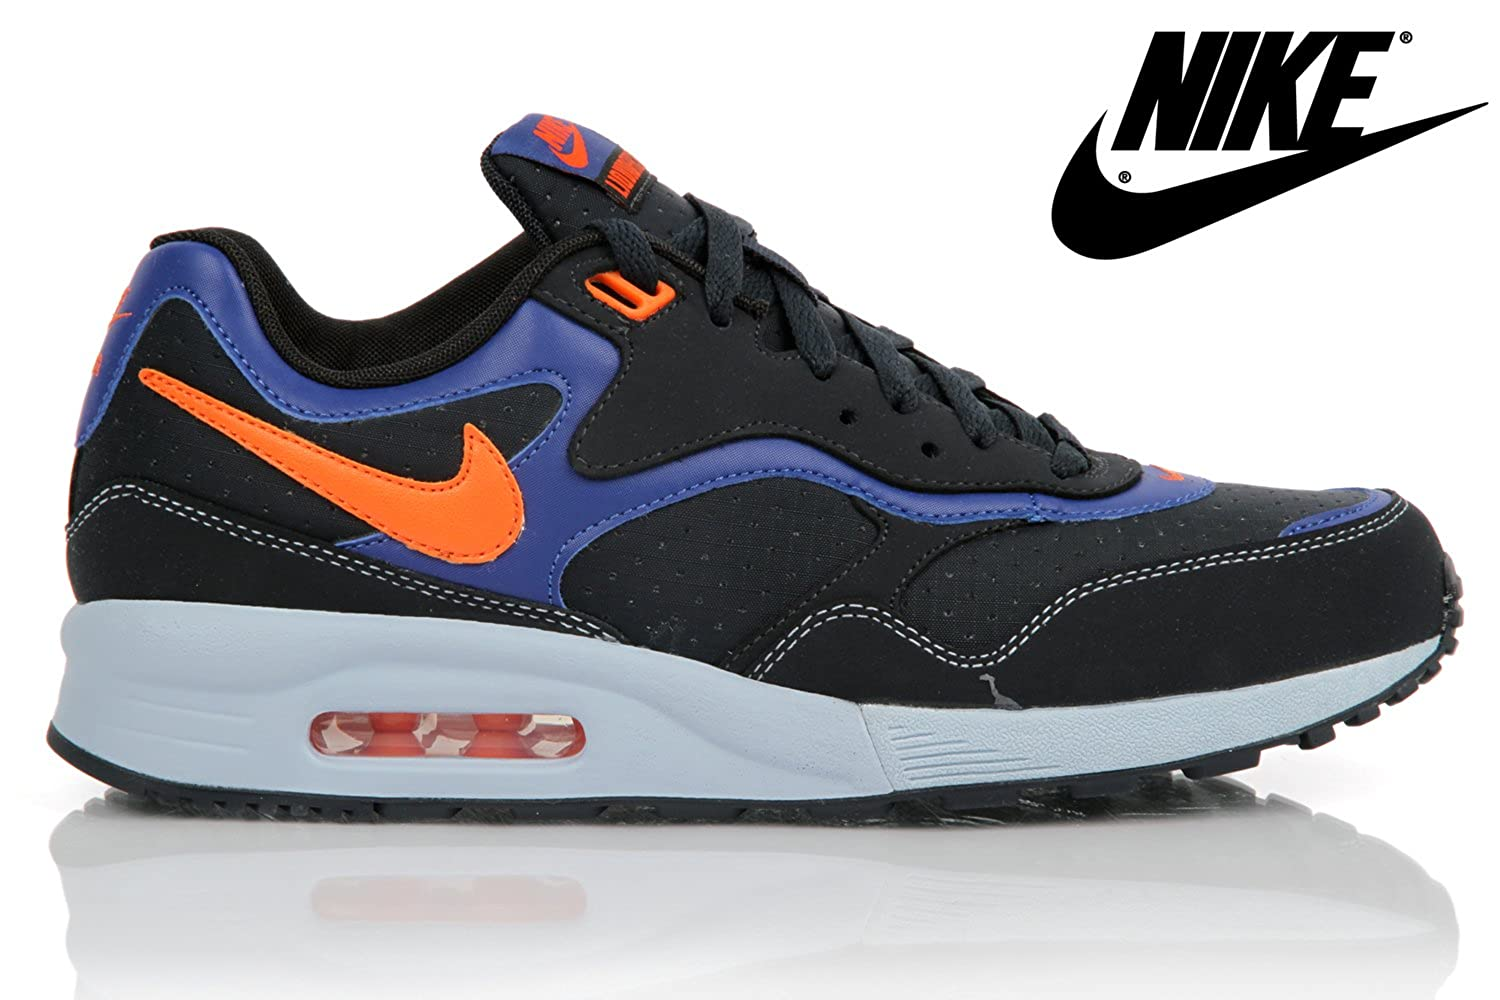 NIKE AIR MAX LIQUID RACER 400: Amazon.co.uk: Shoes & Bags